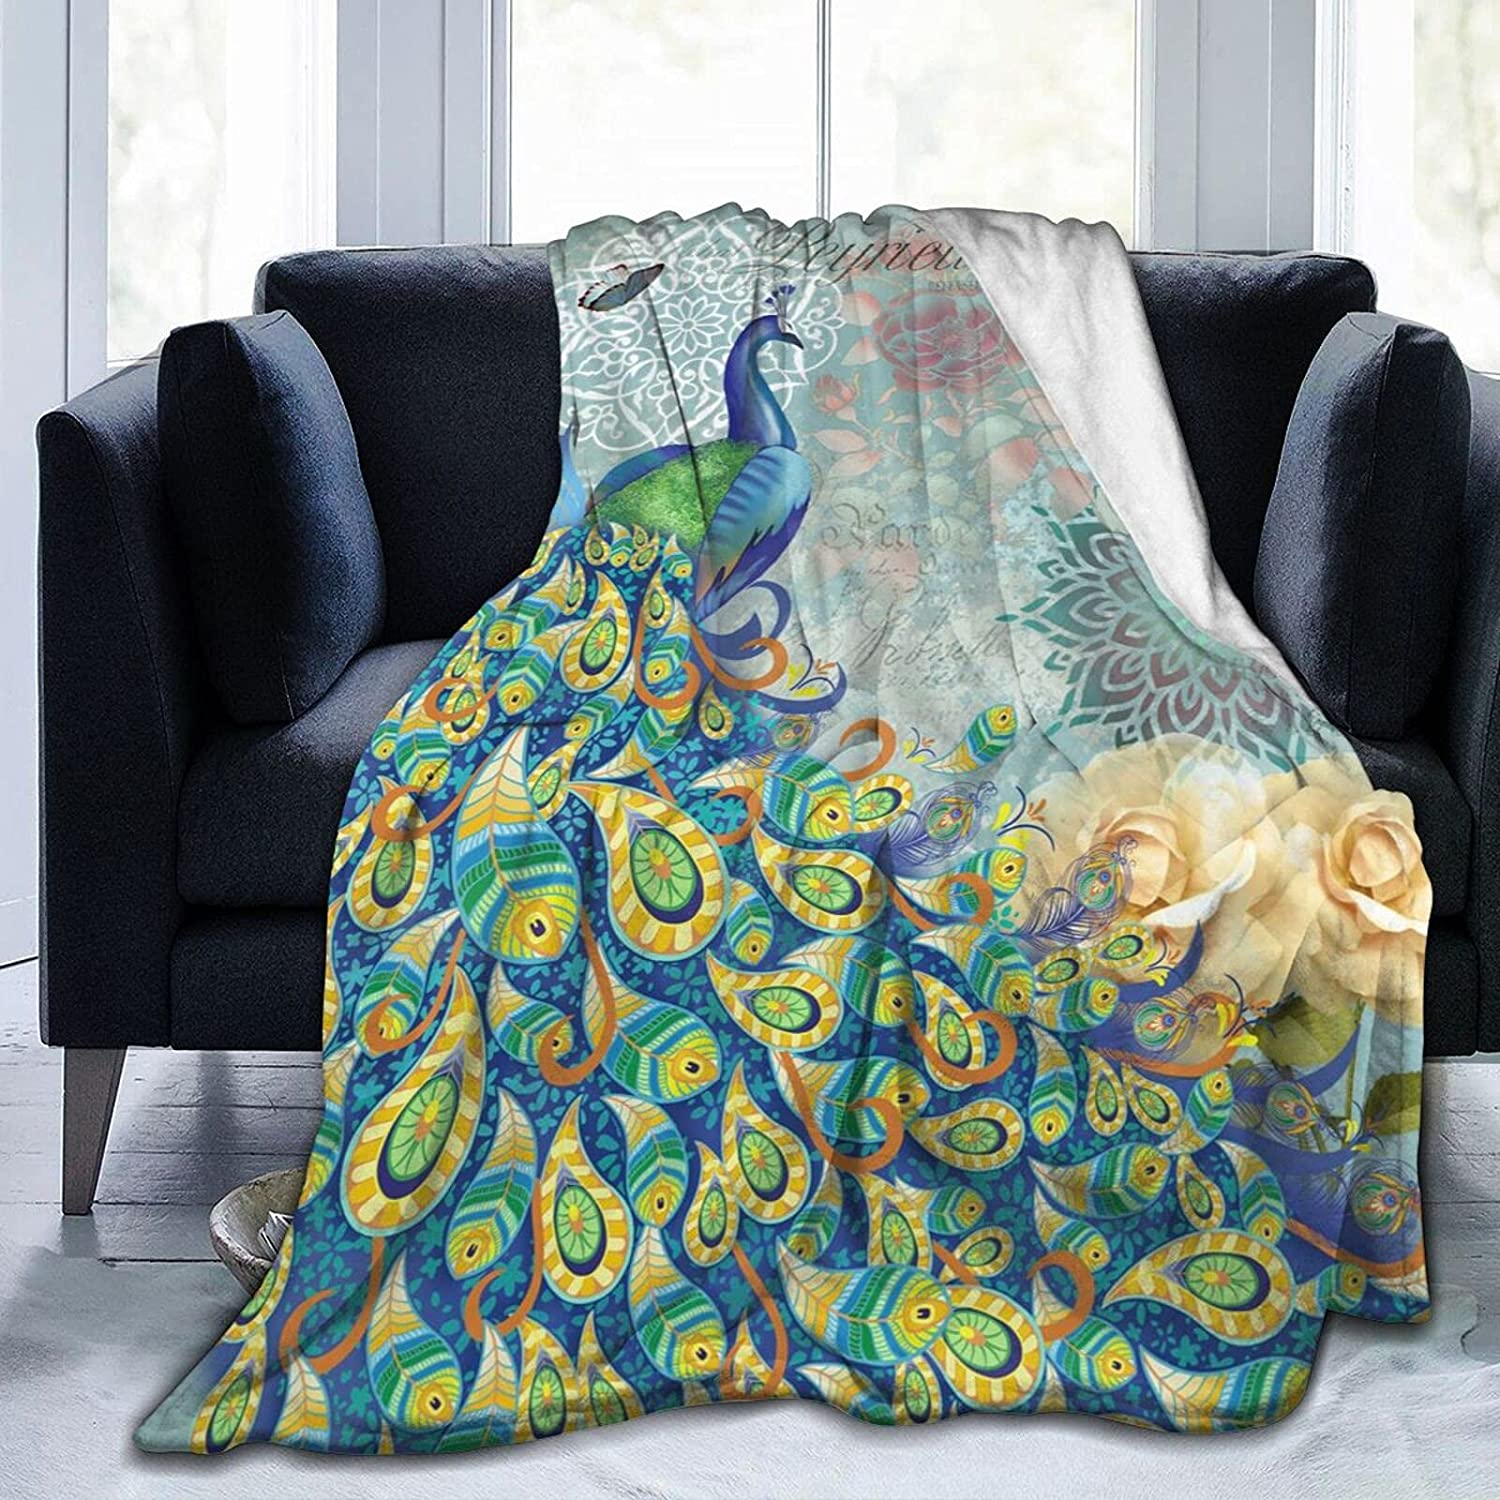 Peacock and Vintage Outlet sale feature Direct sale of manufacturer Botanical Throw Fleece Blan Flannel Blankets